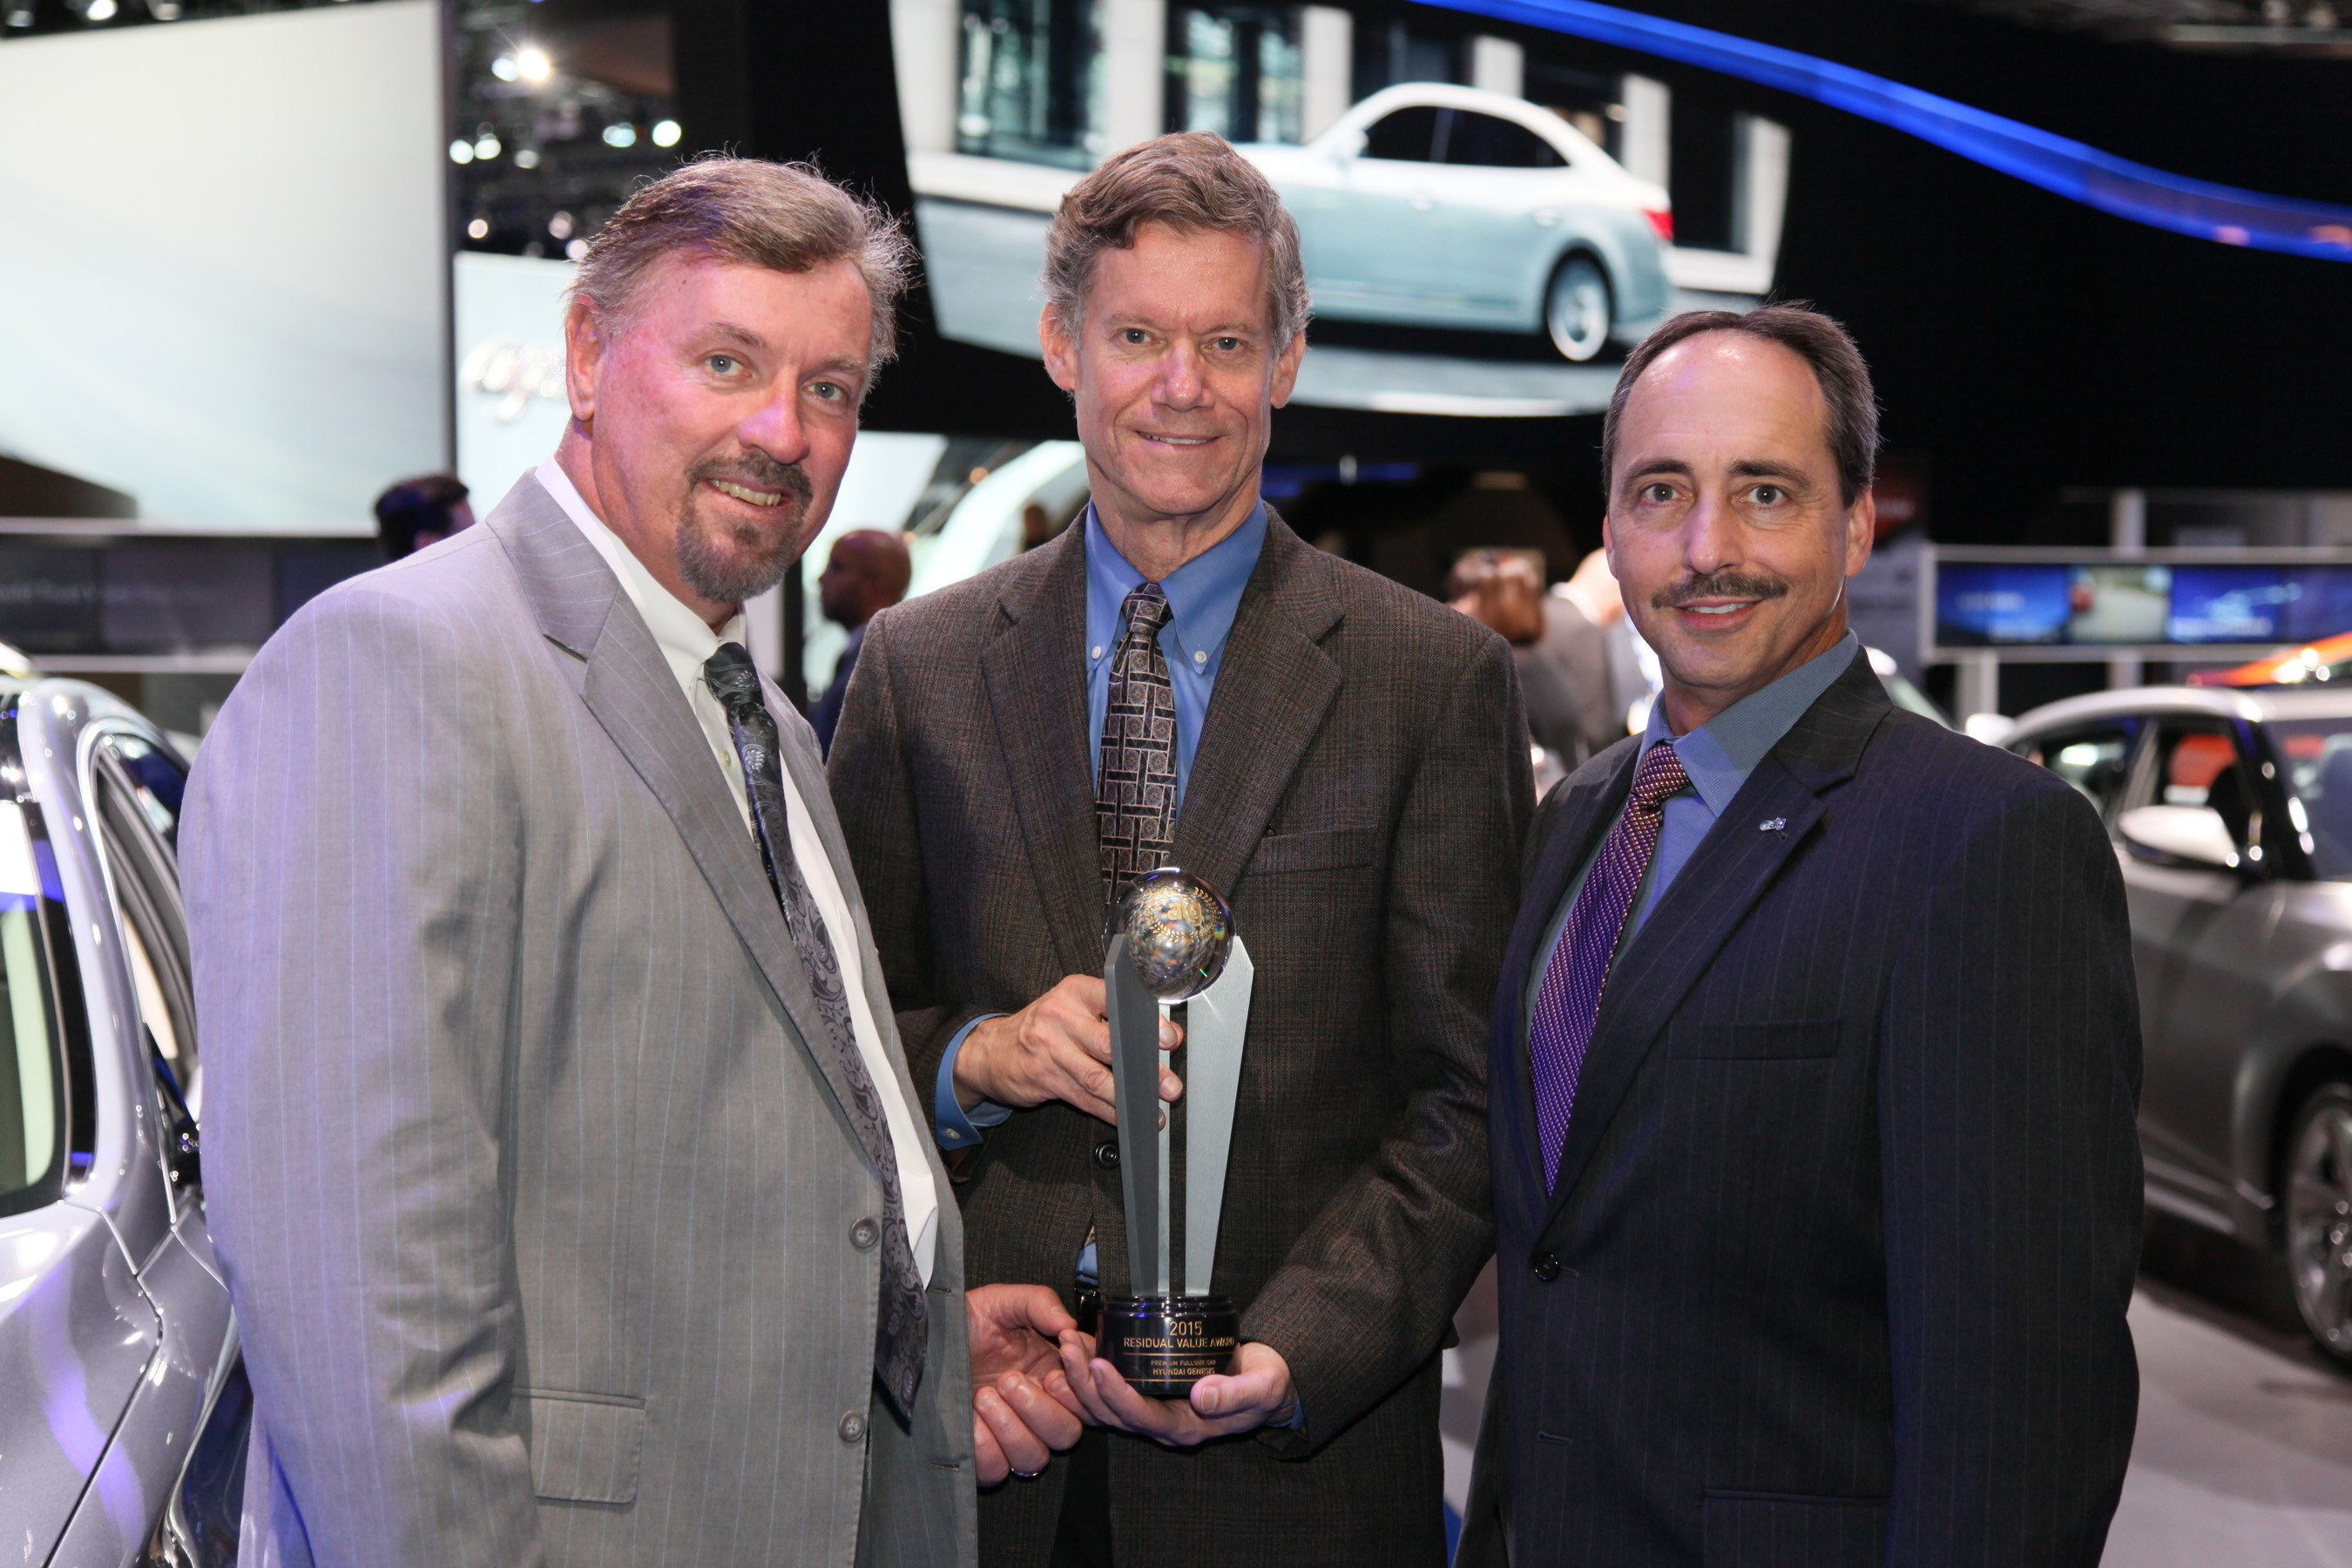 Larry Dominique, president, ALG hands the ALG Best Residual Value award for the Premium Full-Size Car Segment that 2015 Genesis won to Dave Zuchowski, president and CEO, Hyundai Motor America and Mike O'Brien, vice president, corporate and product planning, Hyundai Motor America (center).